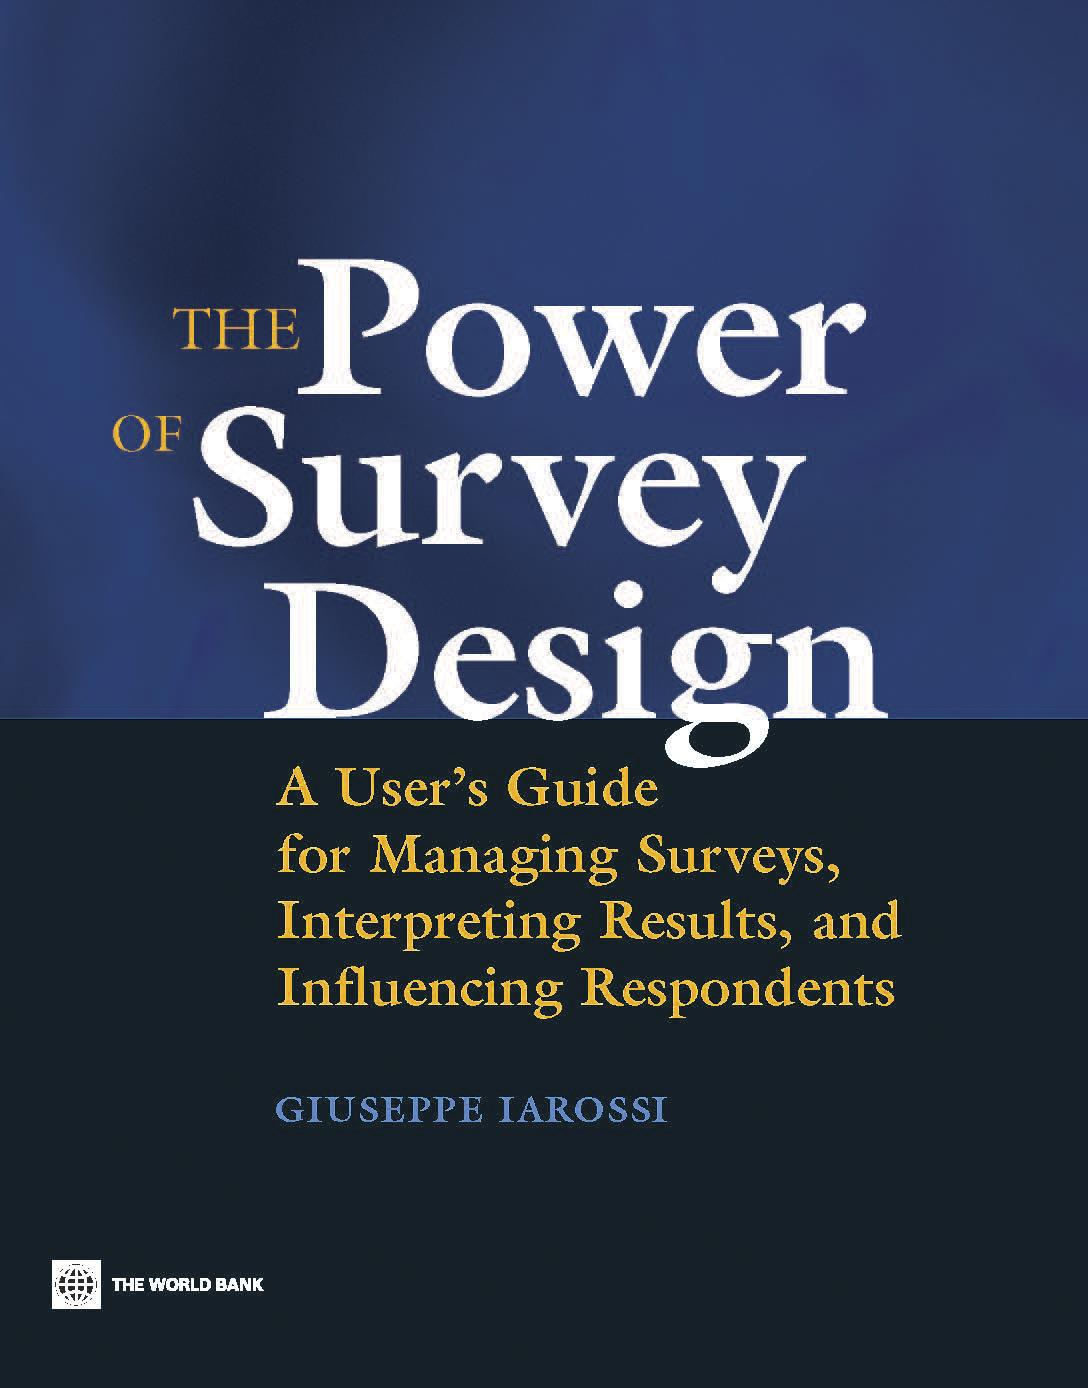 The Power of Survey Design : A User's Guide for Managing Surveys, Interpreting Results, and Influencing Respondents EB9785551497660